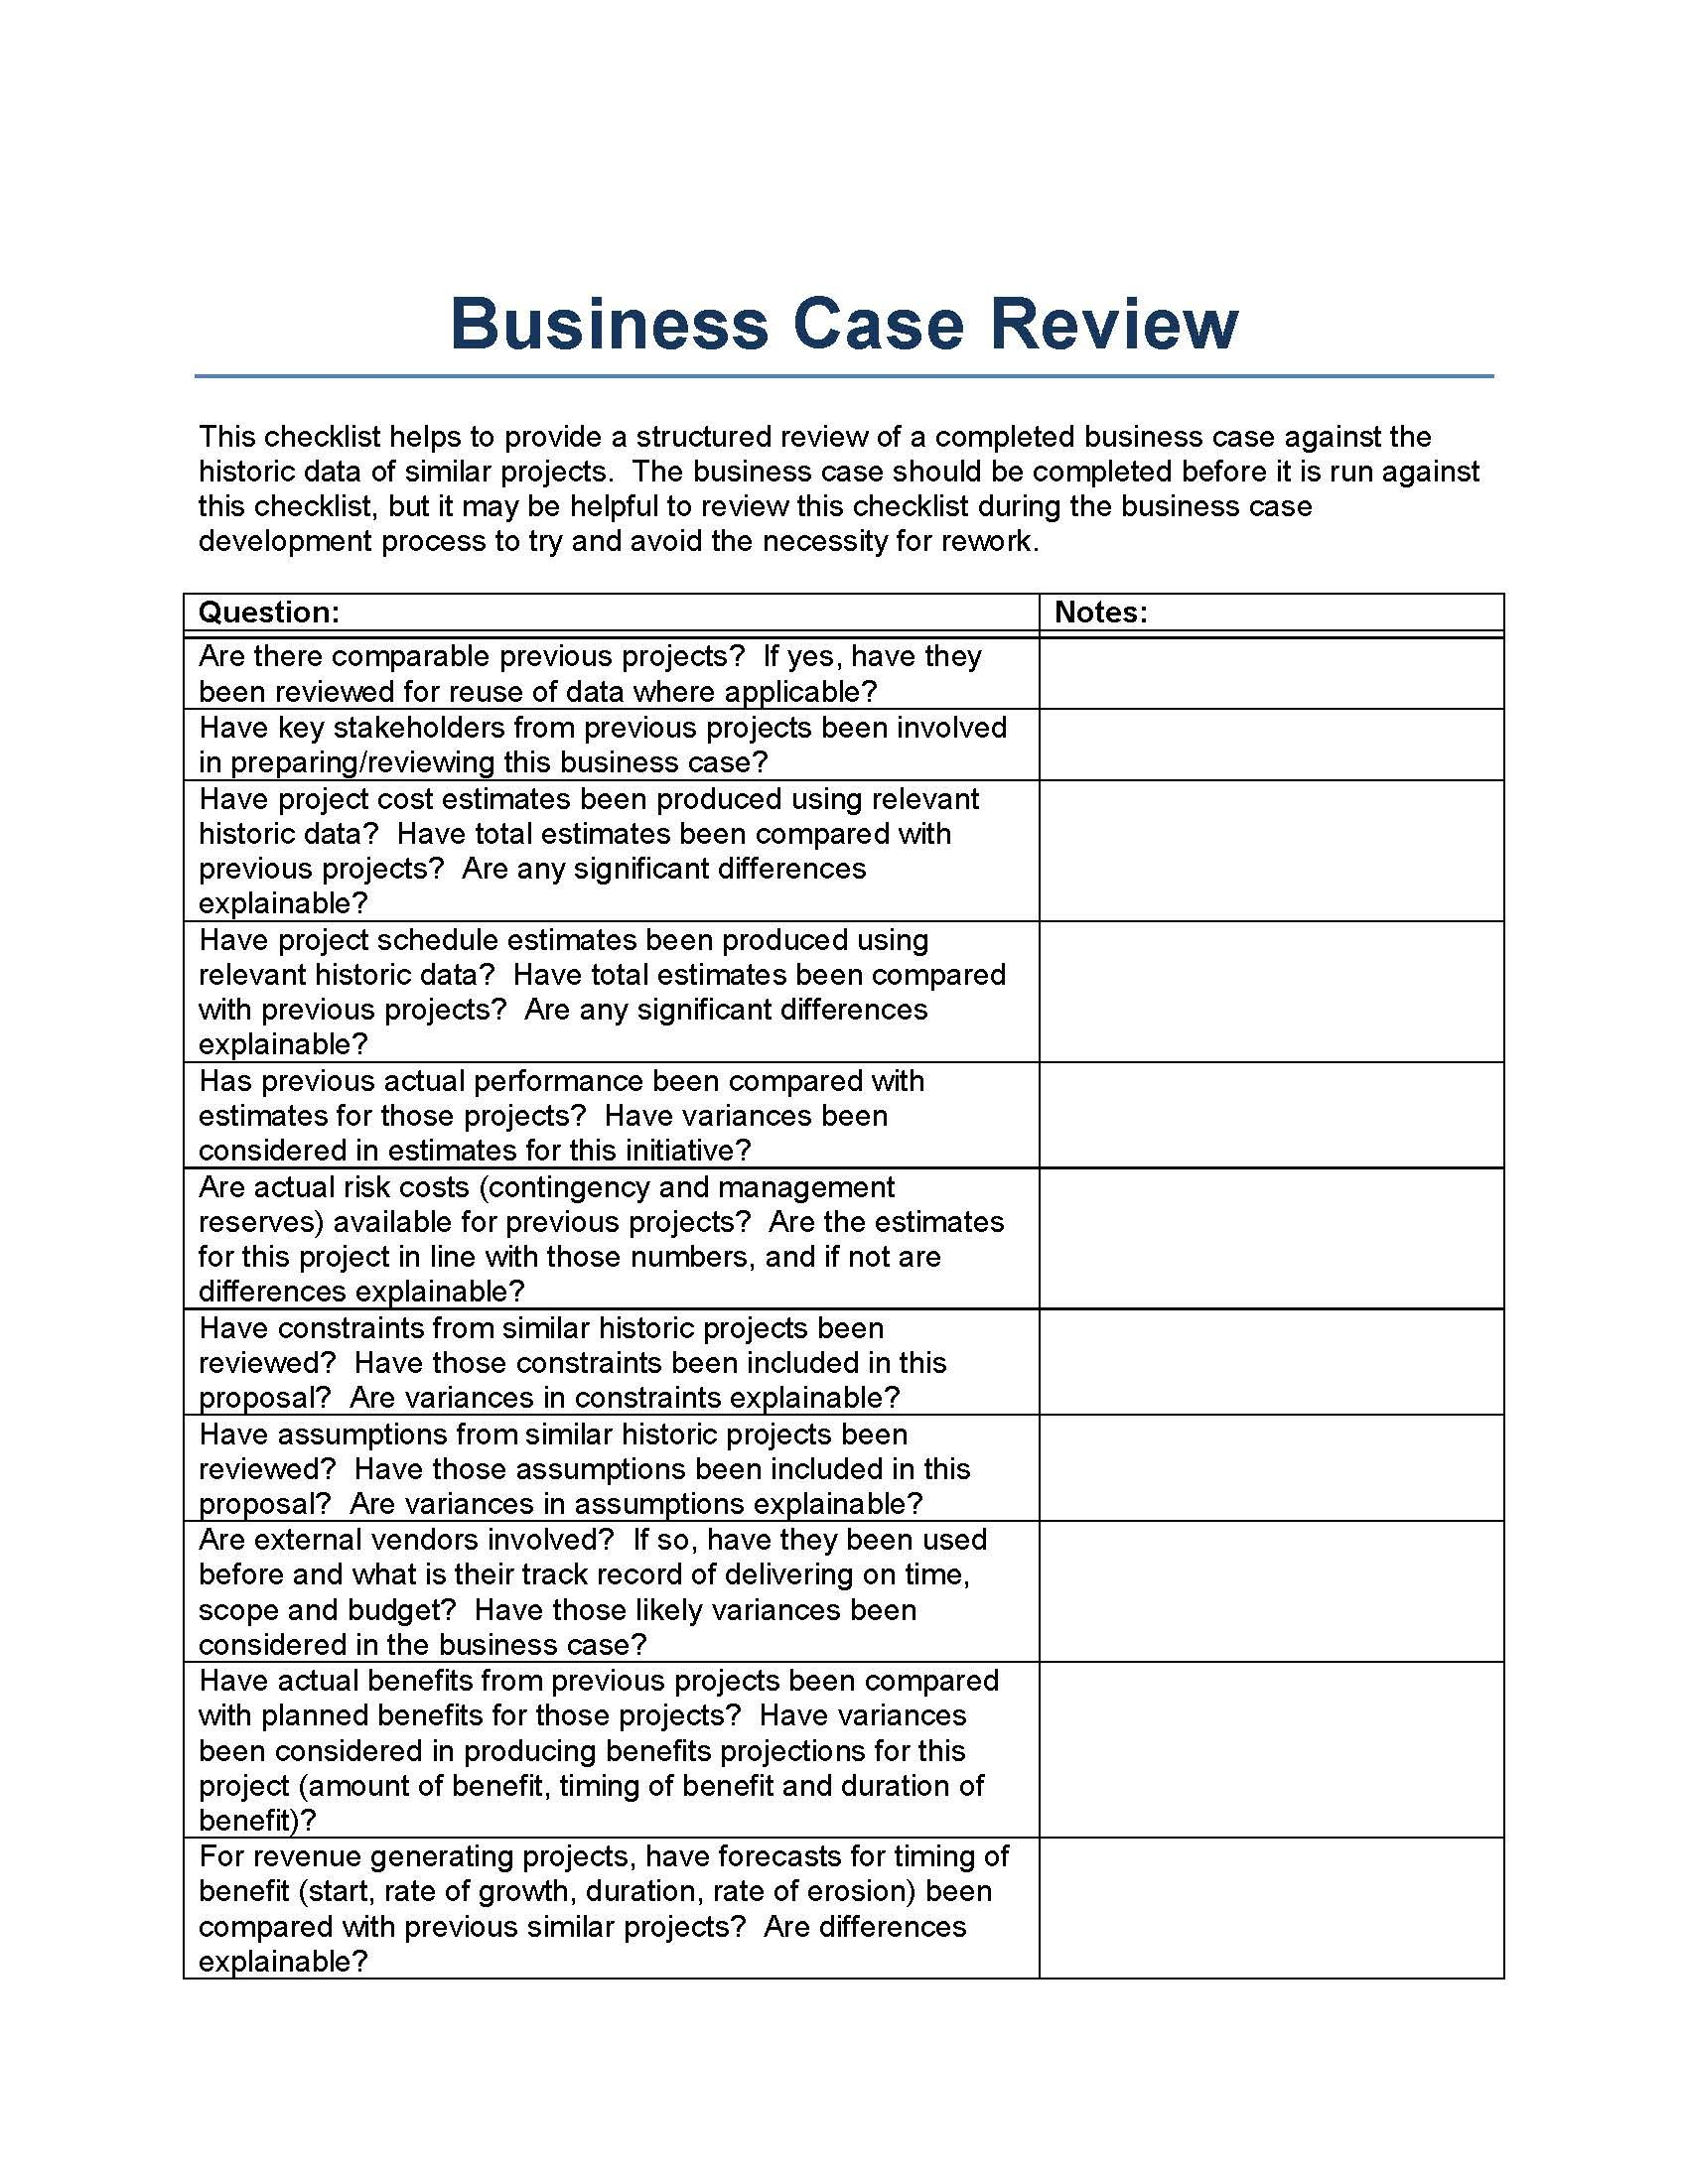 Business case review template from a perspective of historically business case review template from a perspective of historically similar projects cheaphphosting Images